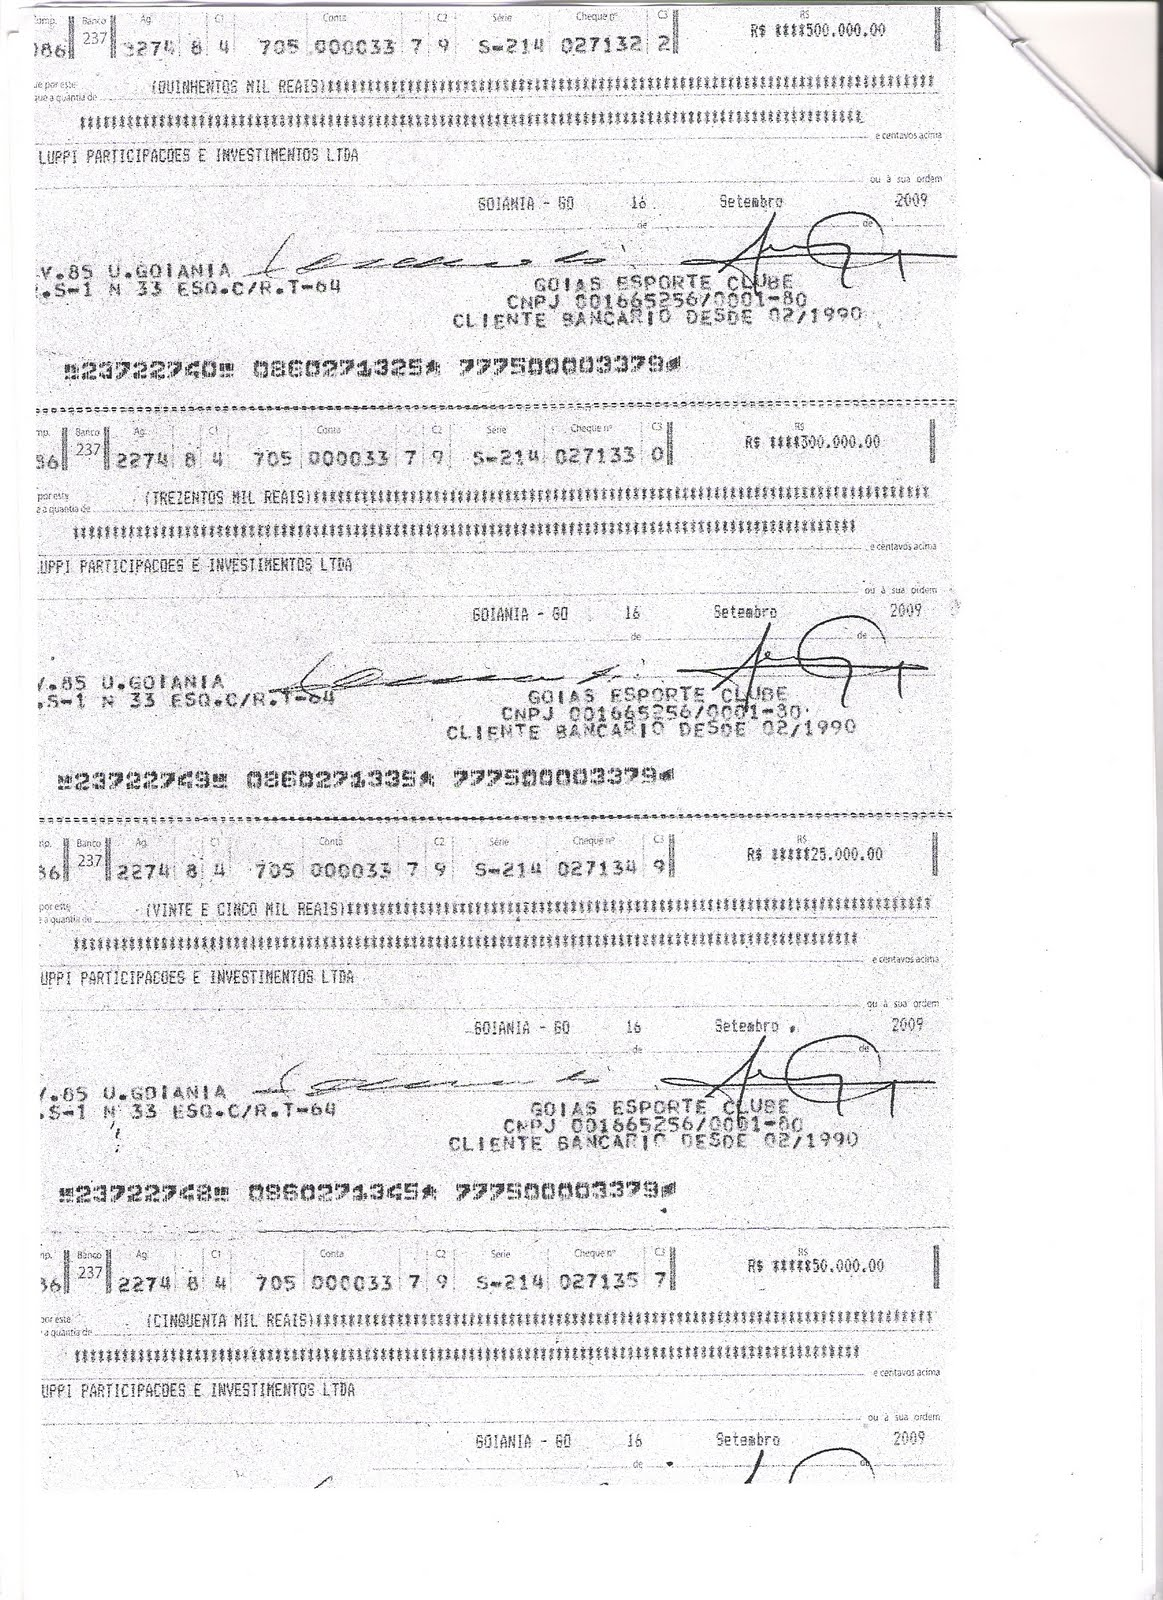 how to prepare cheque for tds